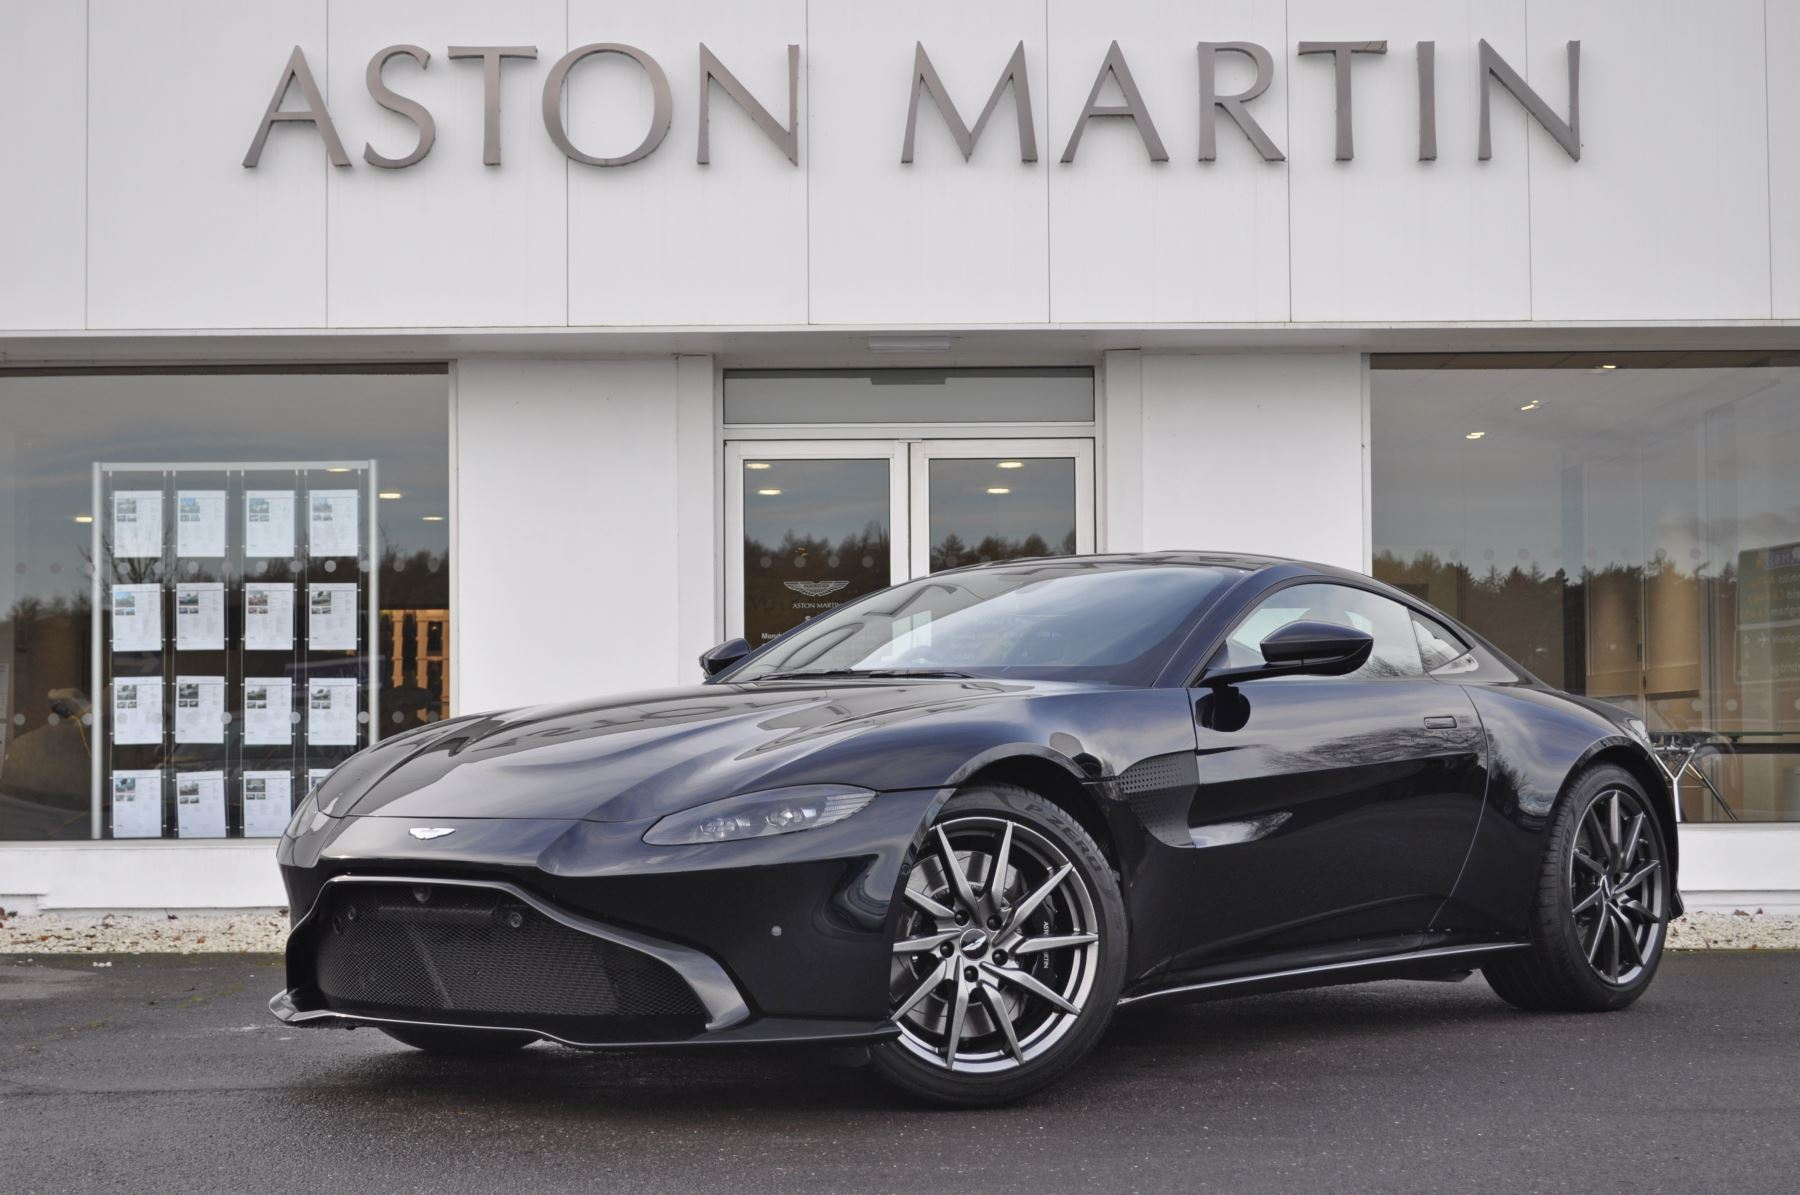 Aston Martin New Vantage 2dr ZF 8 Speed Auto 4.0 Automatic 3 door Coupe (2019) image